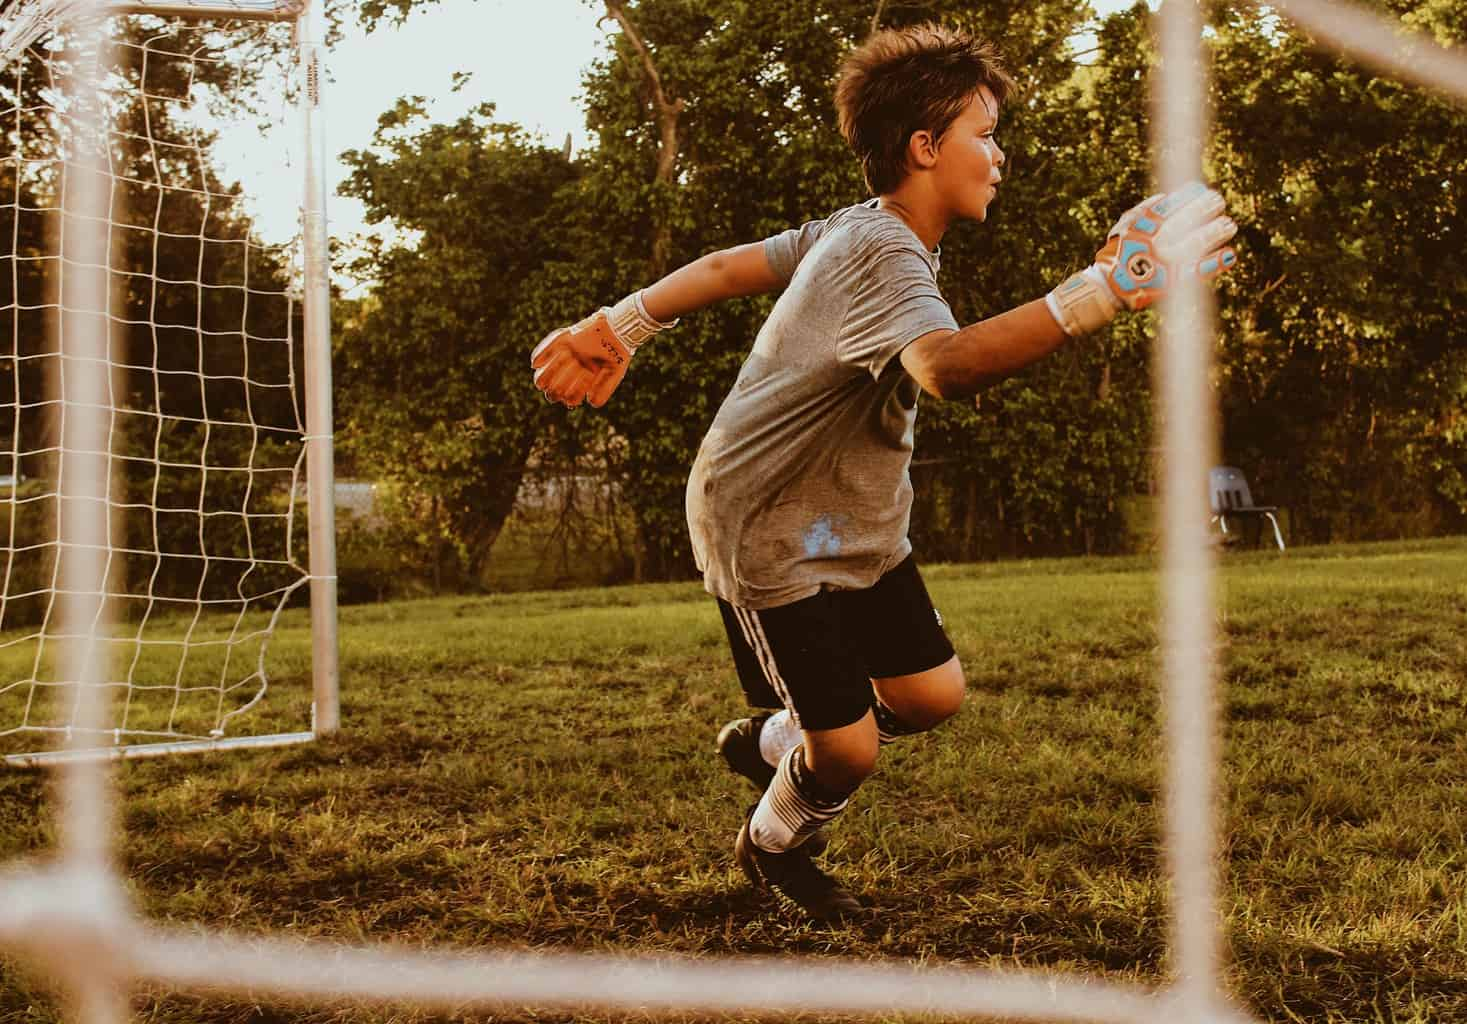 Young goalie kid running to protect the goal